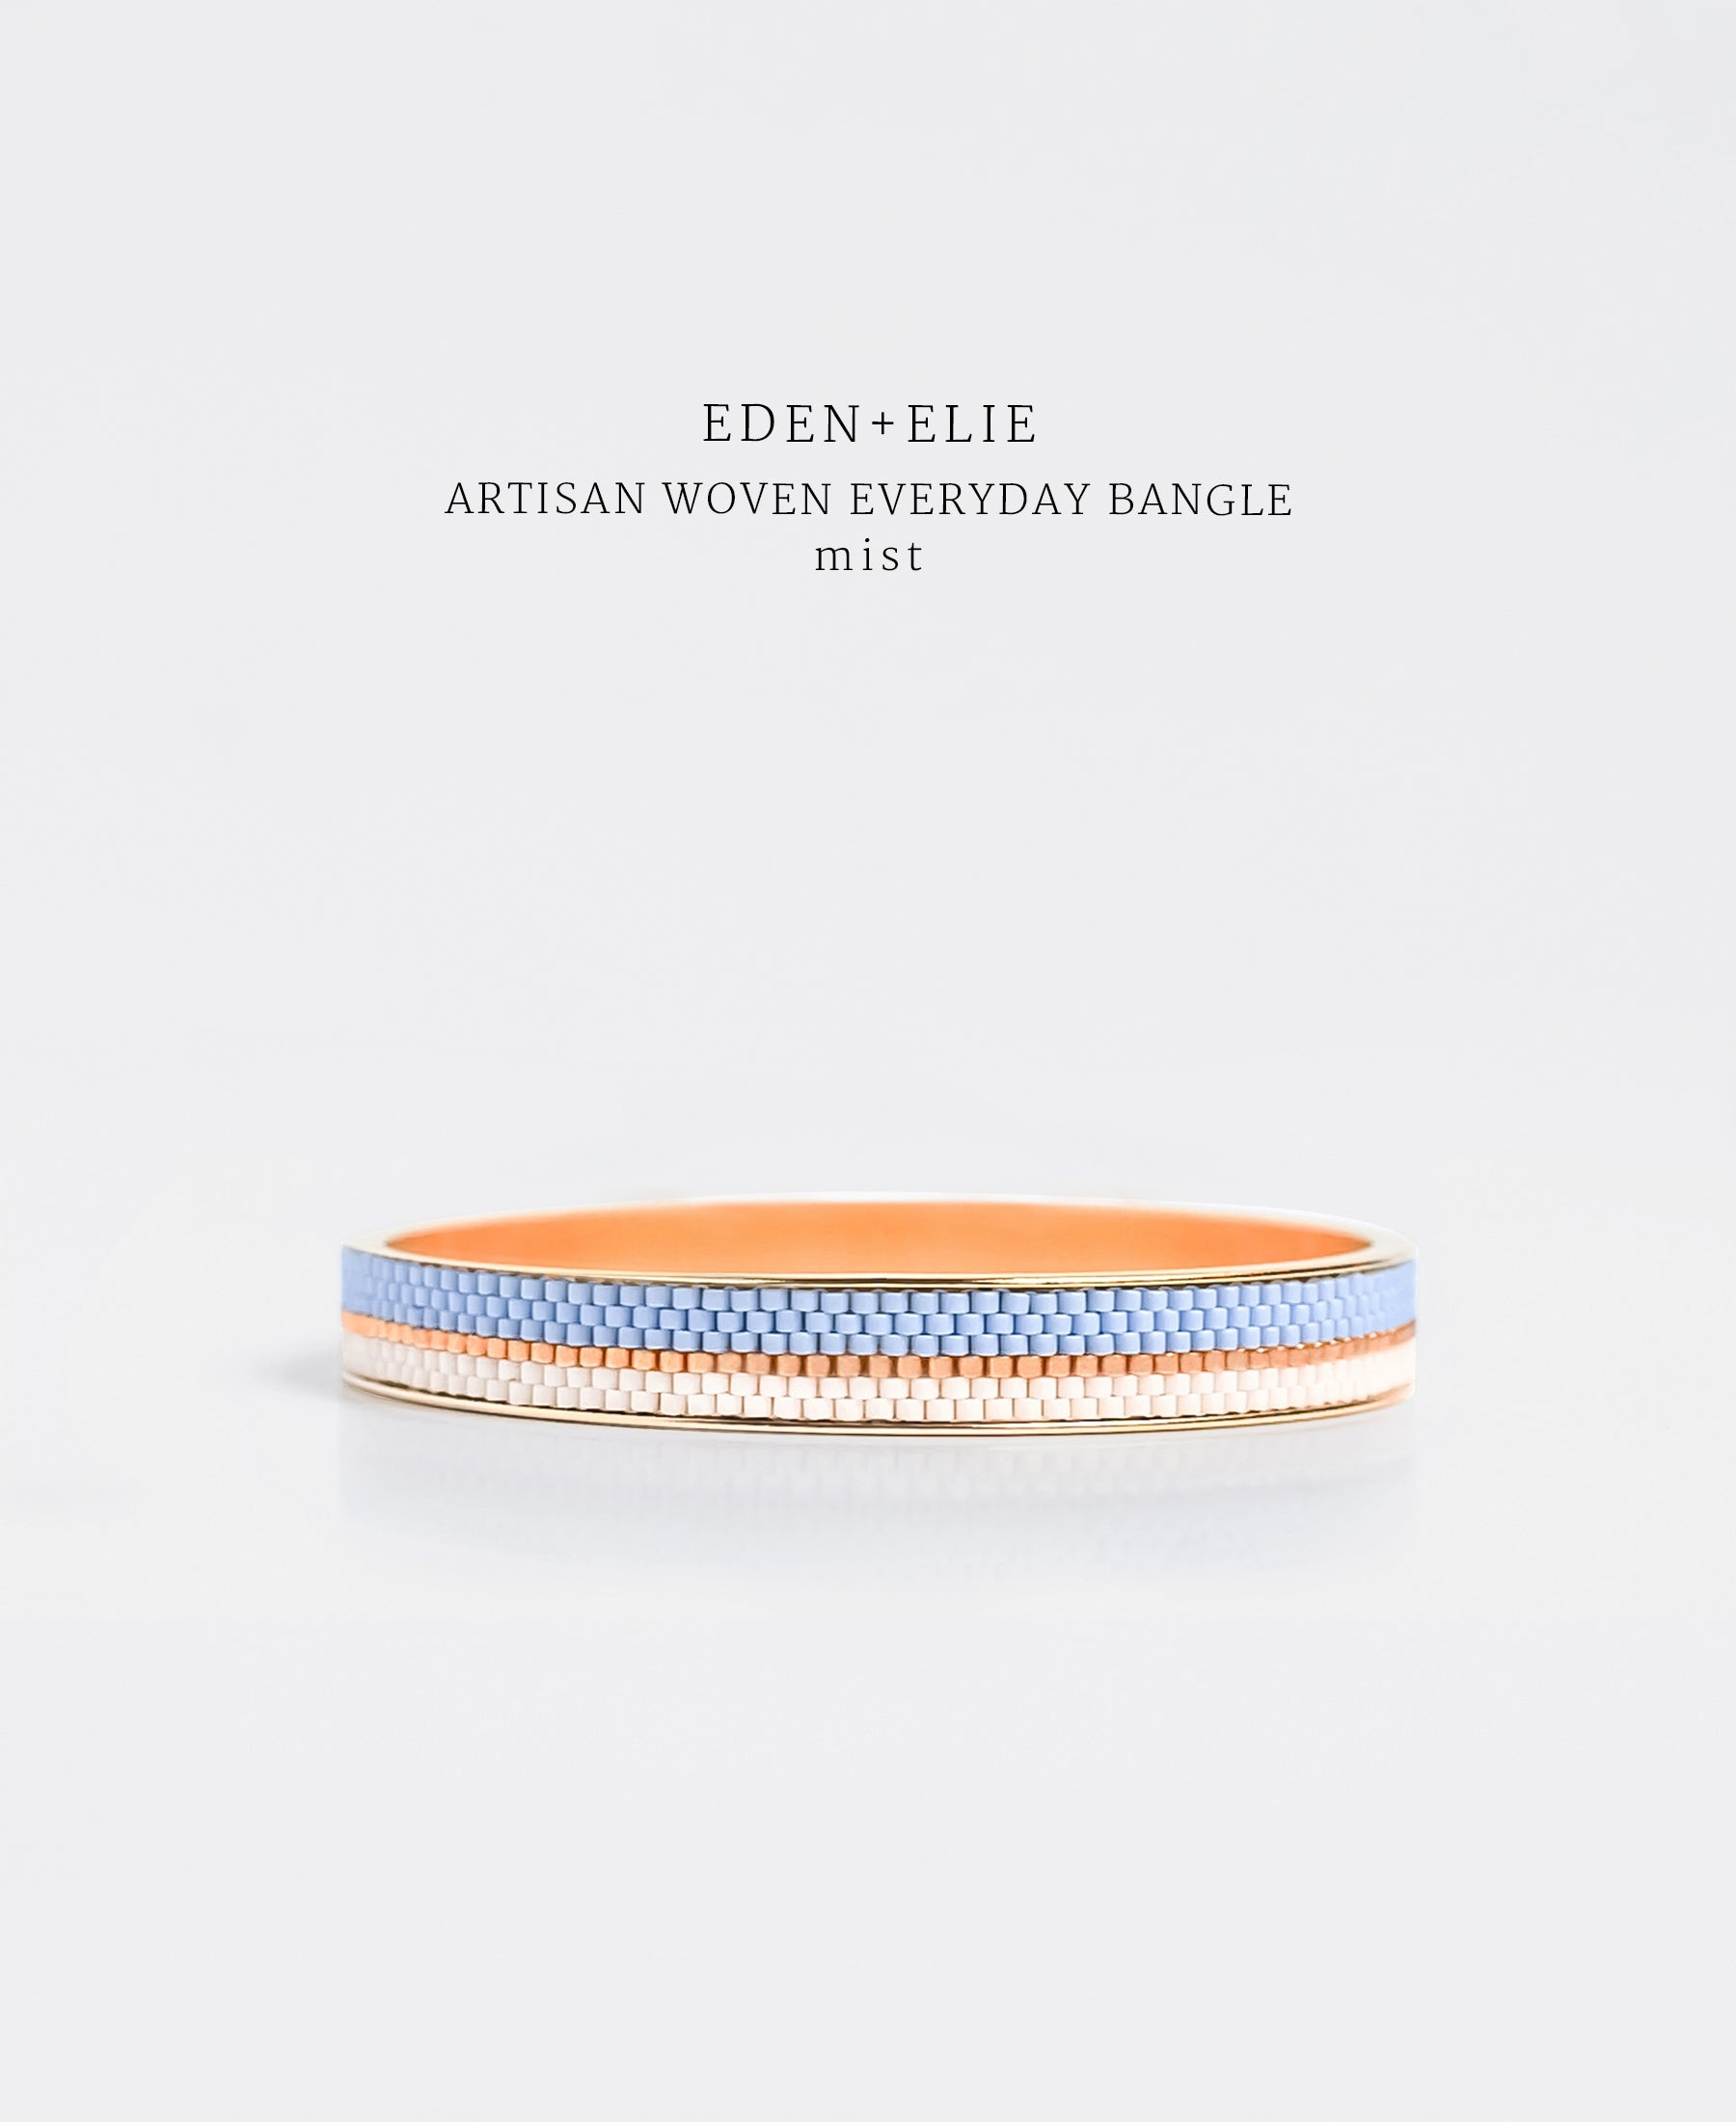 EDEN + ELIE Everyday gold narrow bangle - mist blue